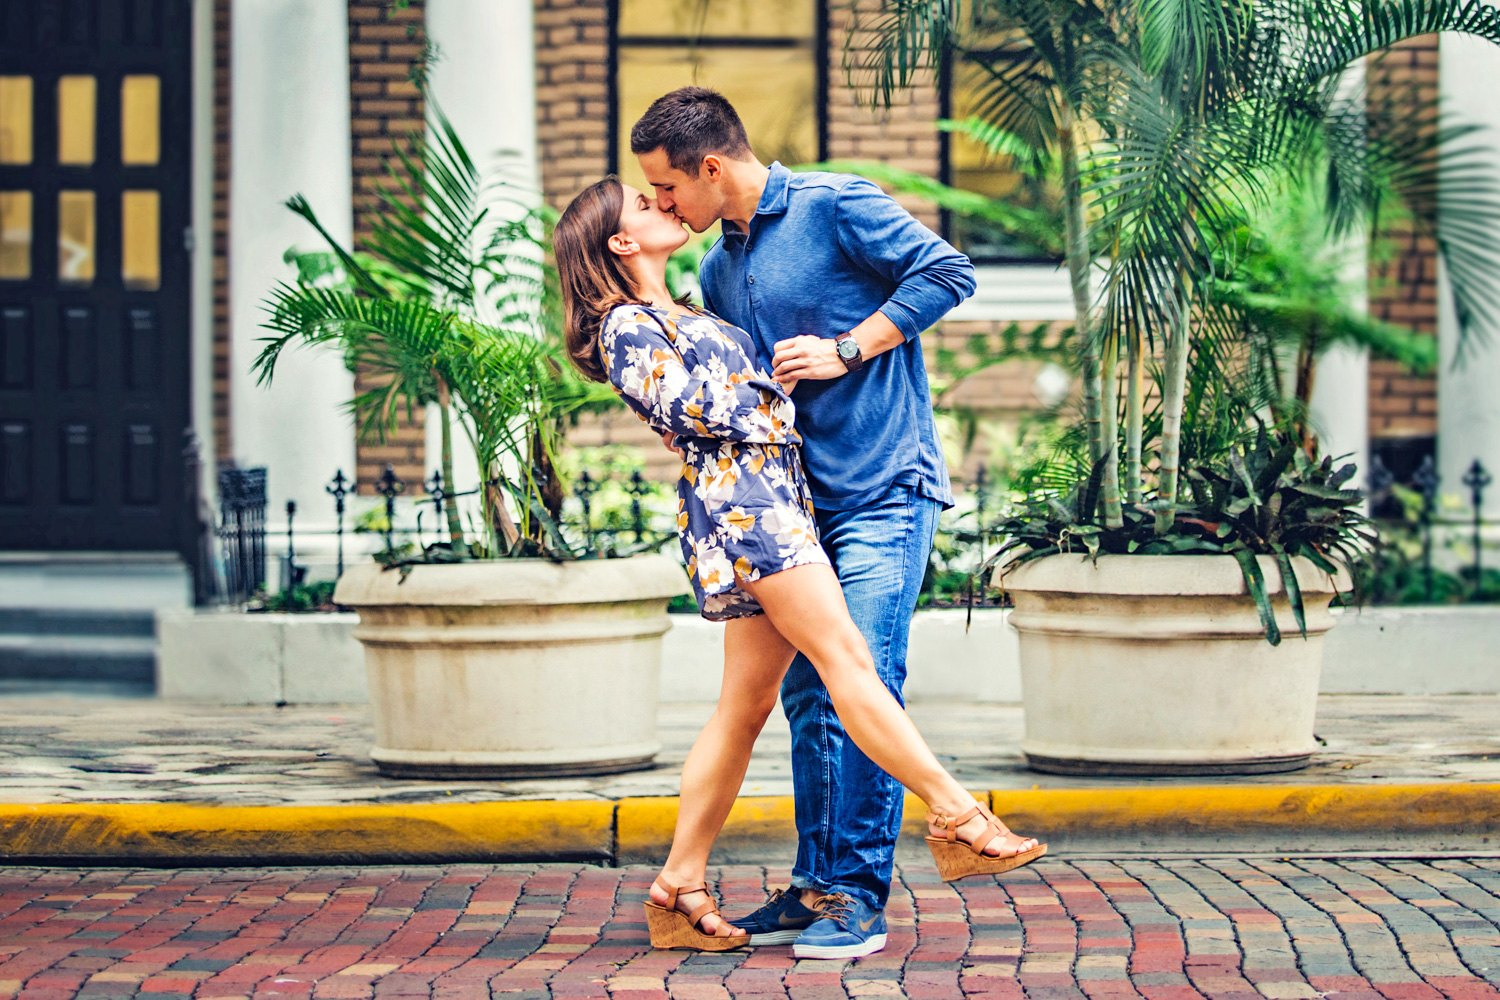 25 Sep 15Allie + David - Dancing Church Street Downtown orlando walkabout engagement - organic wedding photography 01.jpg